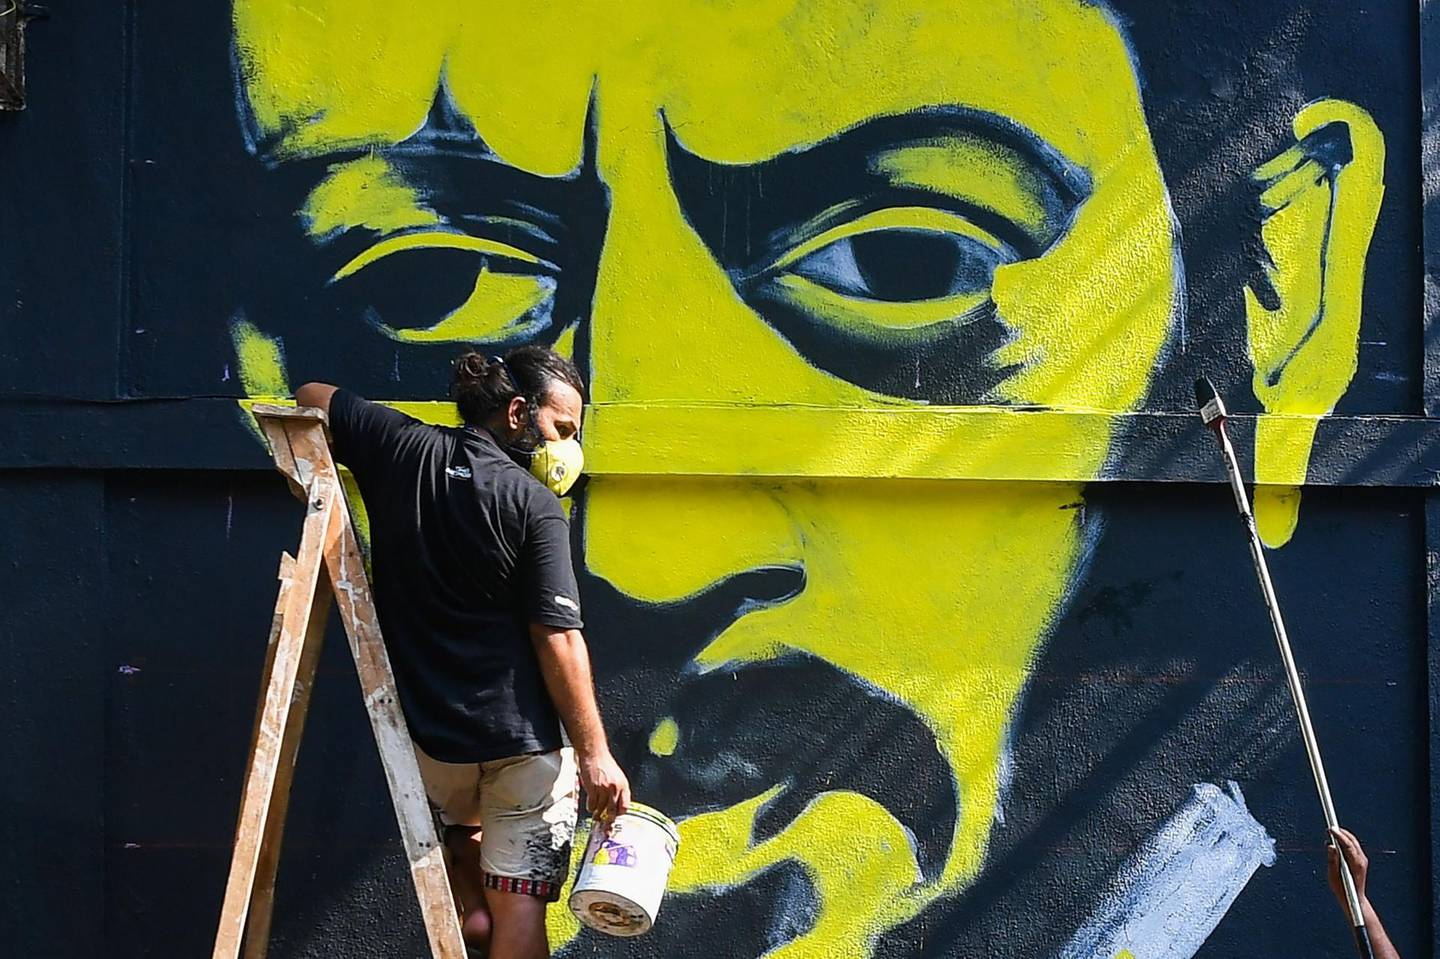 """Artists work on a mural of late Bollywood actor Irrfan Khan on a wall in a neighbourhood in Mumbai on May 1, 2020. Acclaimed Indian actor Irrfan Khan, whose international movie career included hits such as """"Slumdog Millionaire"""", """"Life of Pi"""" and """"The Amazing Spider-Man"""", died at the age of 53 on April 29. / AFP / Indranil MUKHERJEE"""